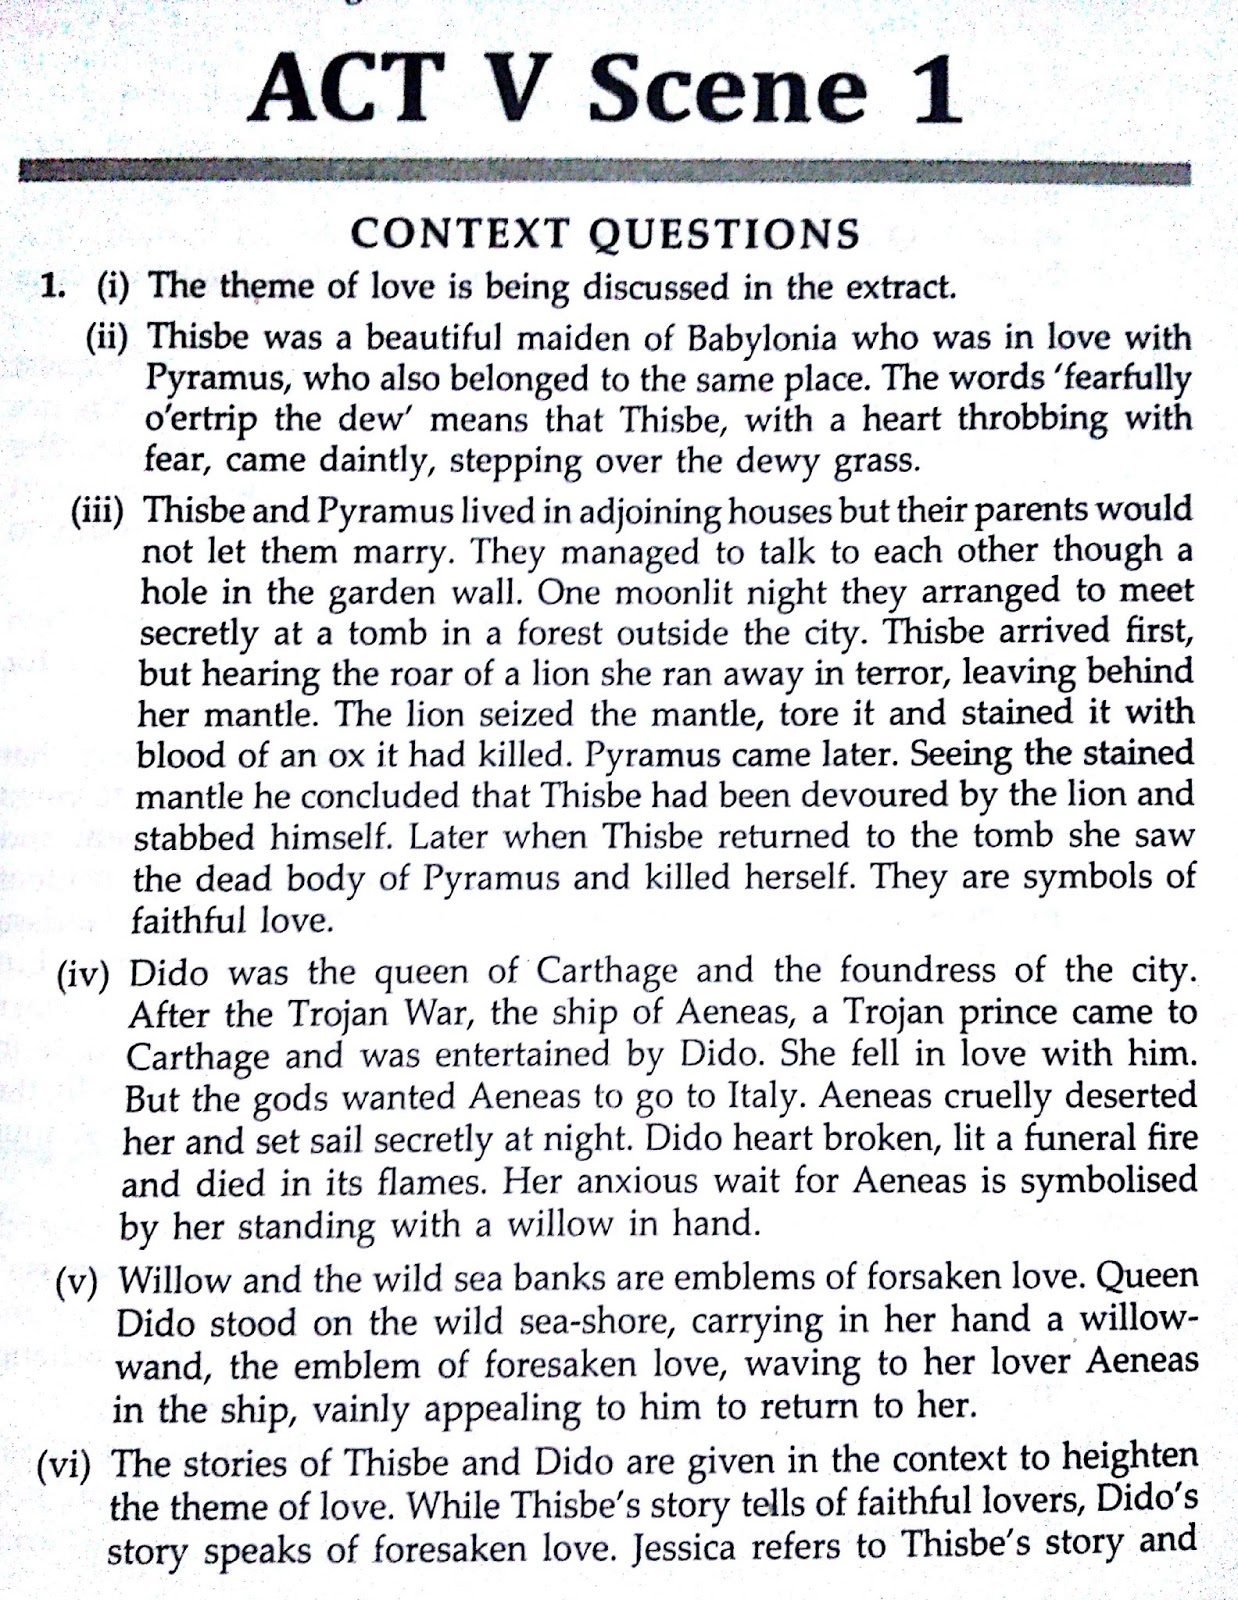 Workbook Answers/ Solutions to the Merchant of Venice, ACT 5 Scene 1